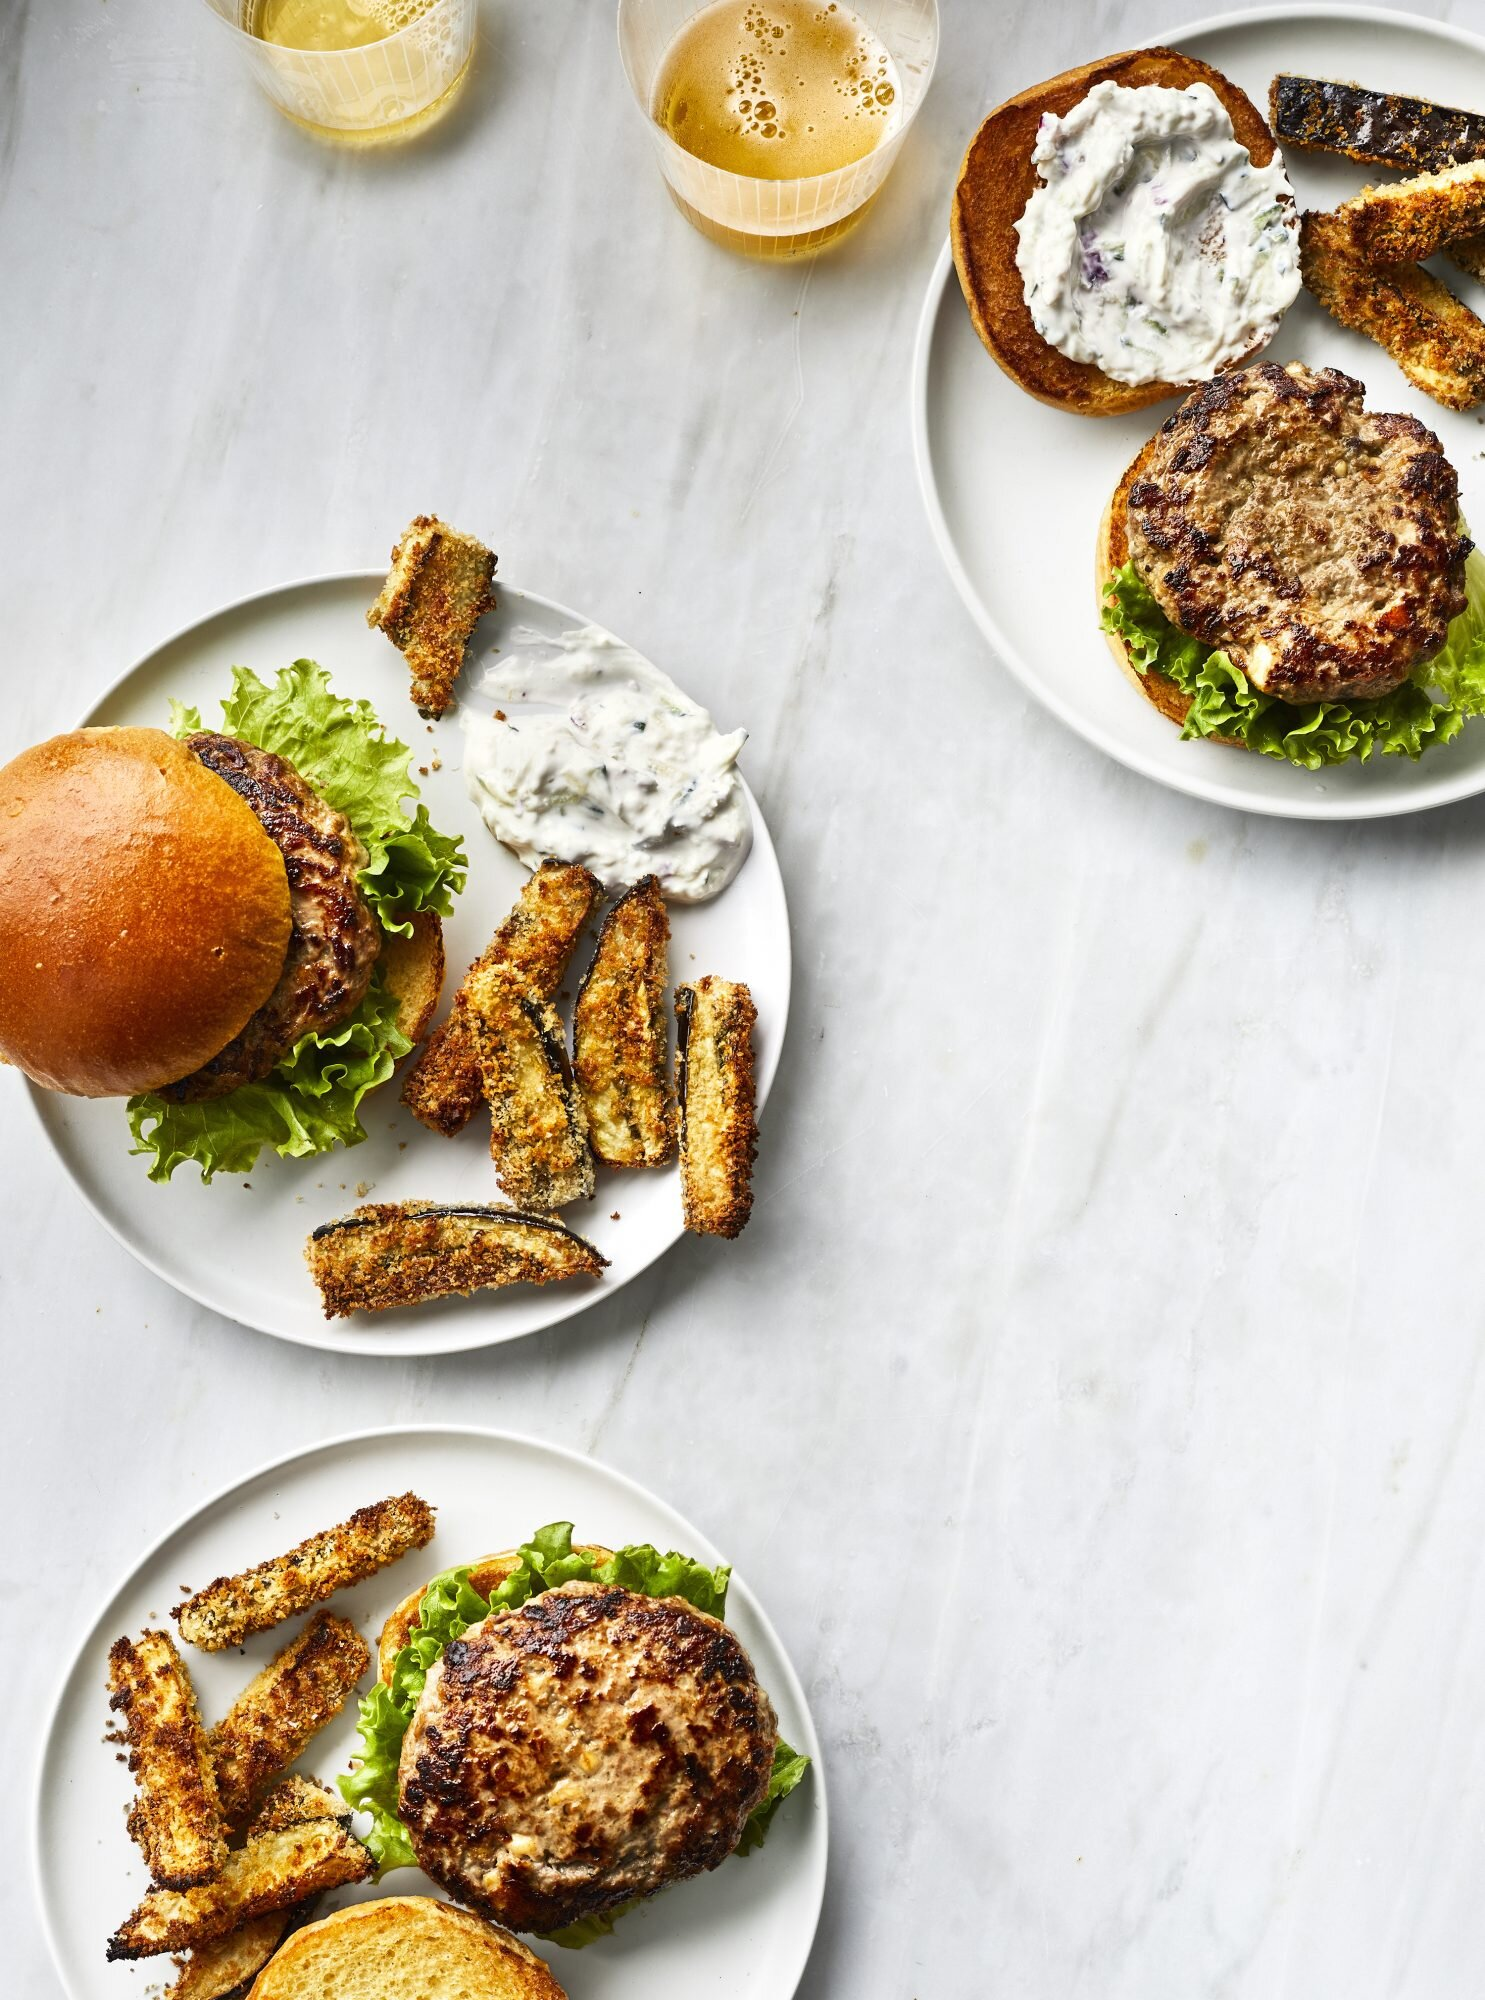 Greek Lamb Burgers With Baked Eggplant Fries